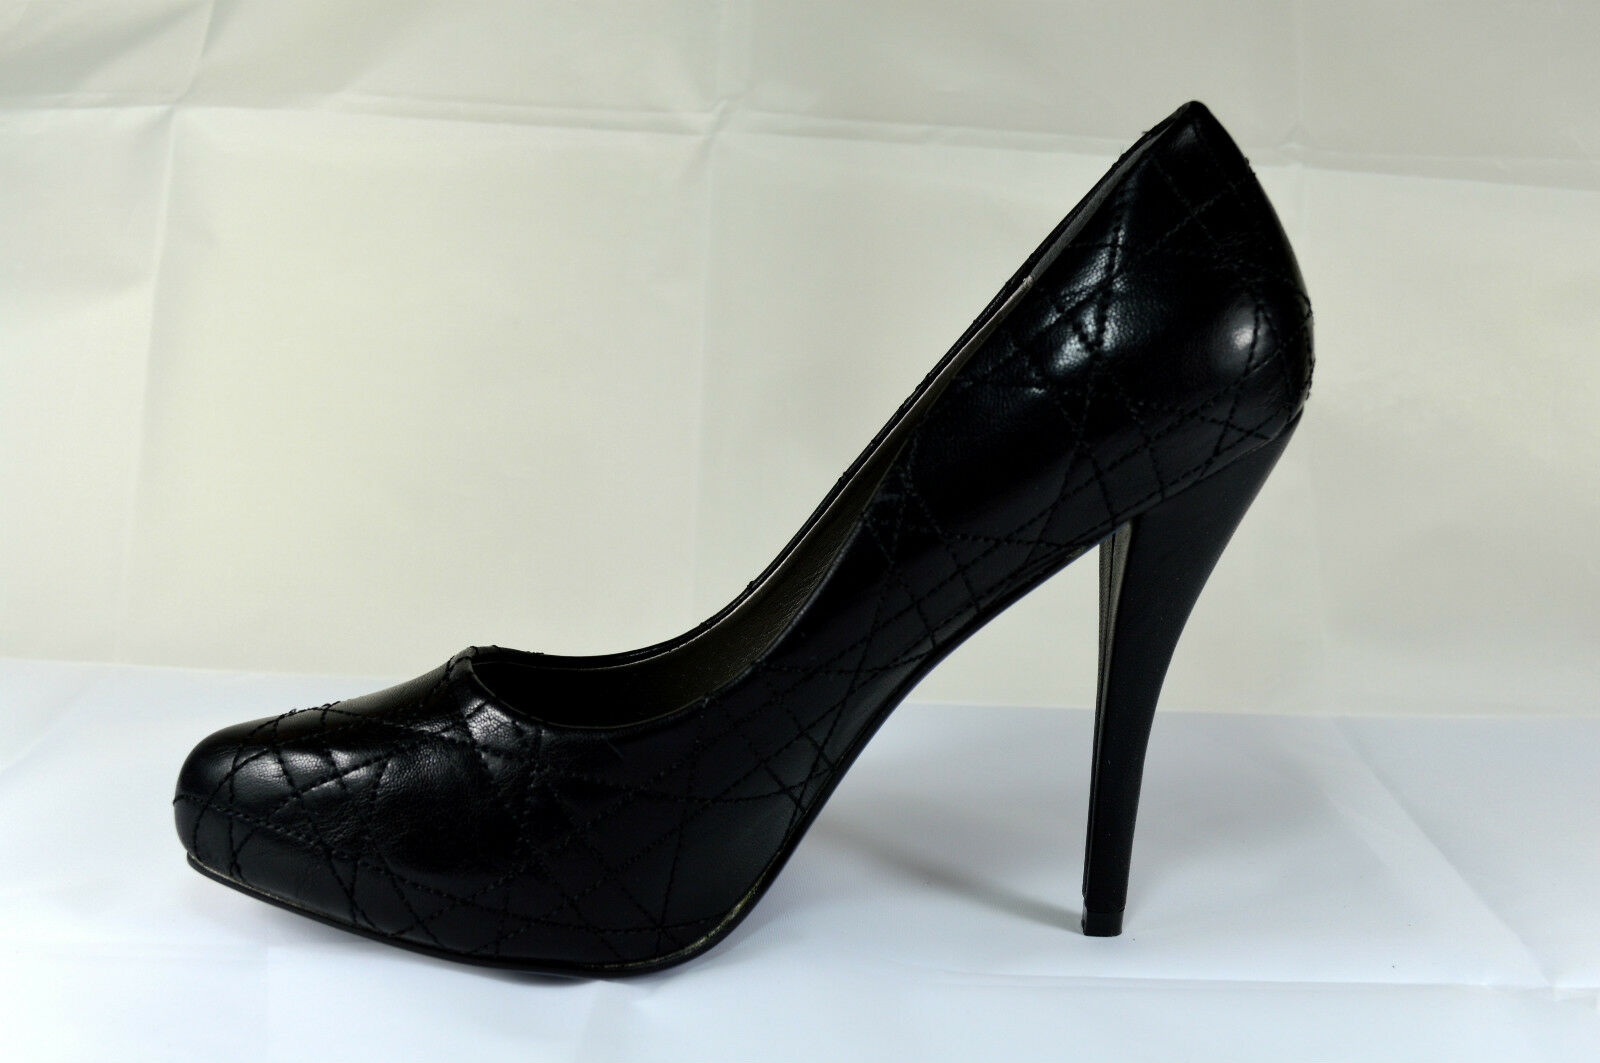 Sale Elegant Women's Heels Evening Shoes Pumps High Heels Women's Size gr.35-40 Black NEW afb194